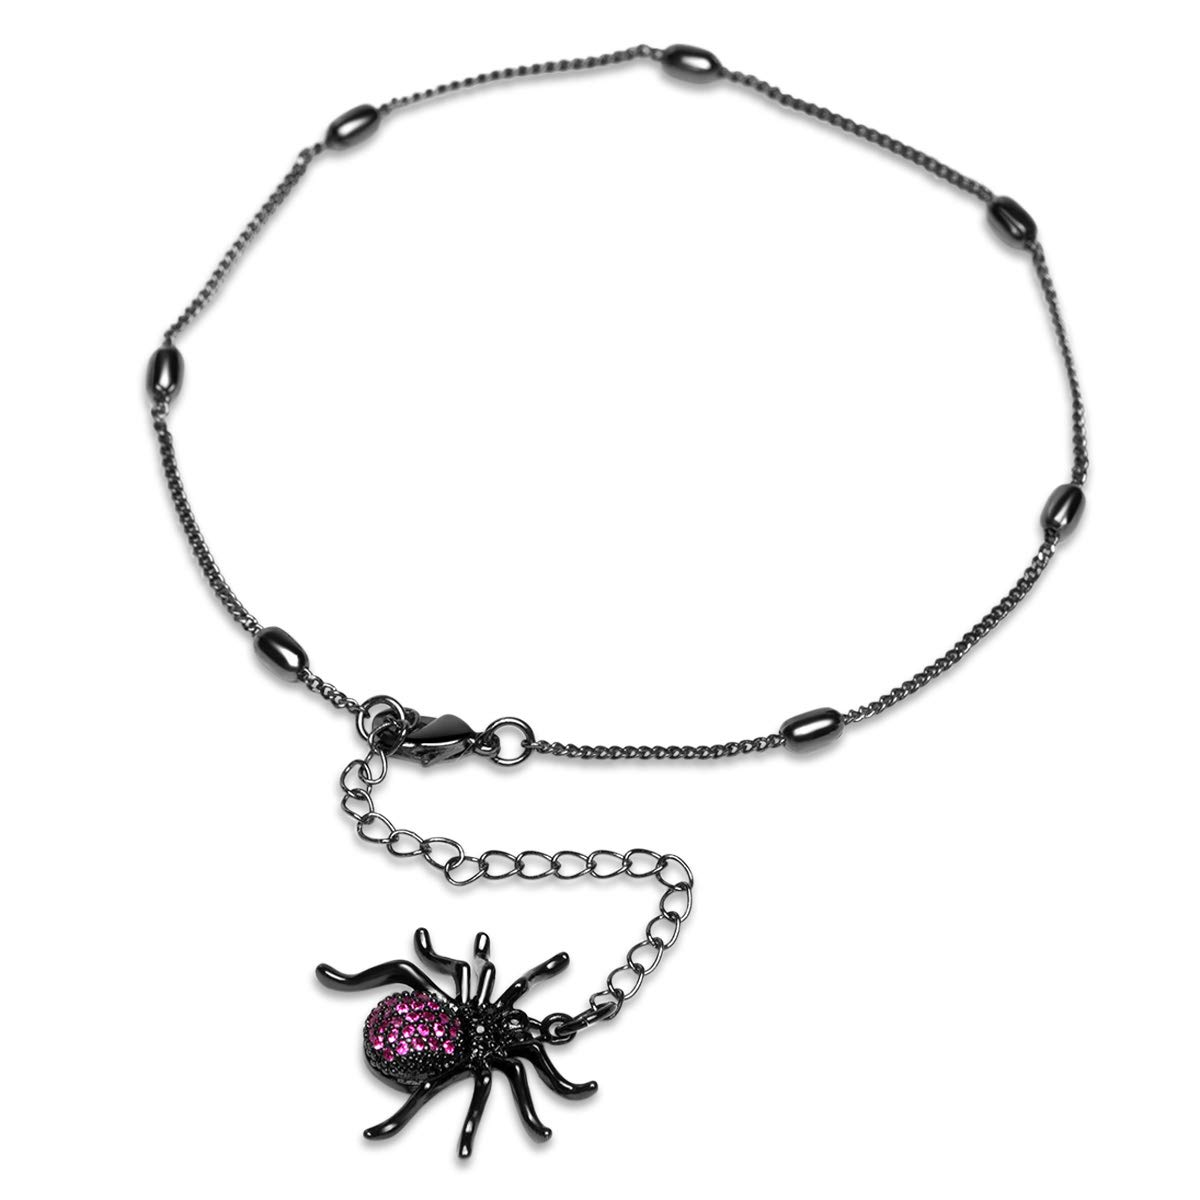 Karseer Beach Link Anklet Black Shiny Spider Charm Adjustable Tassel Insect Animal Ankle Bracelet Foot Jewelry for Women and Girls